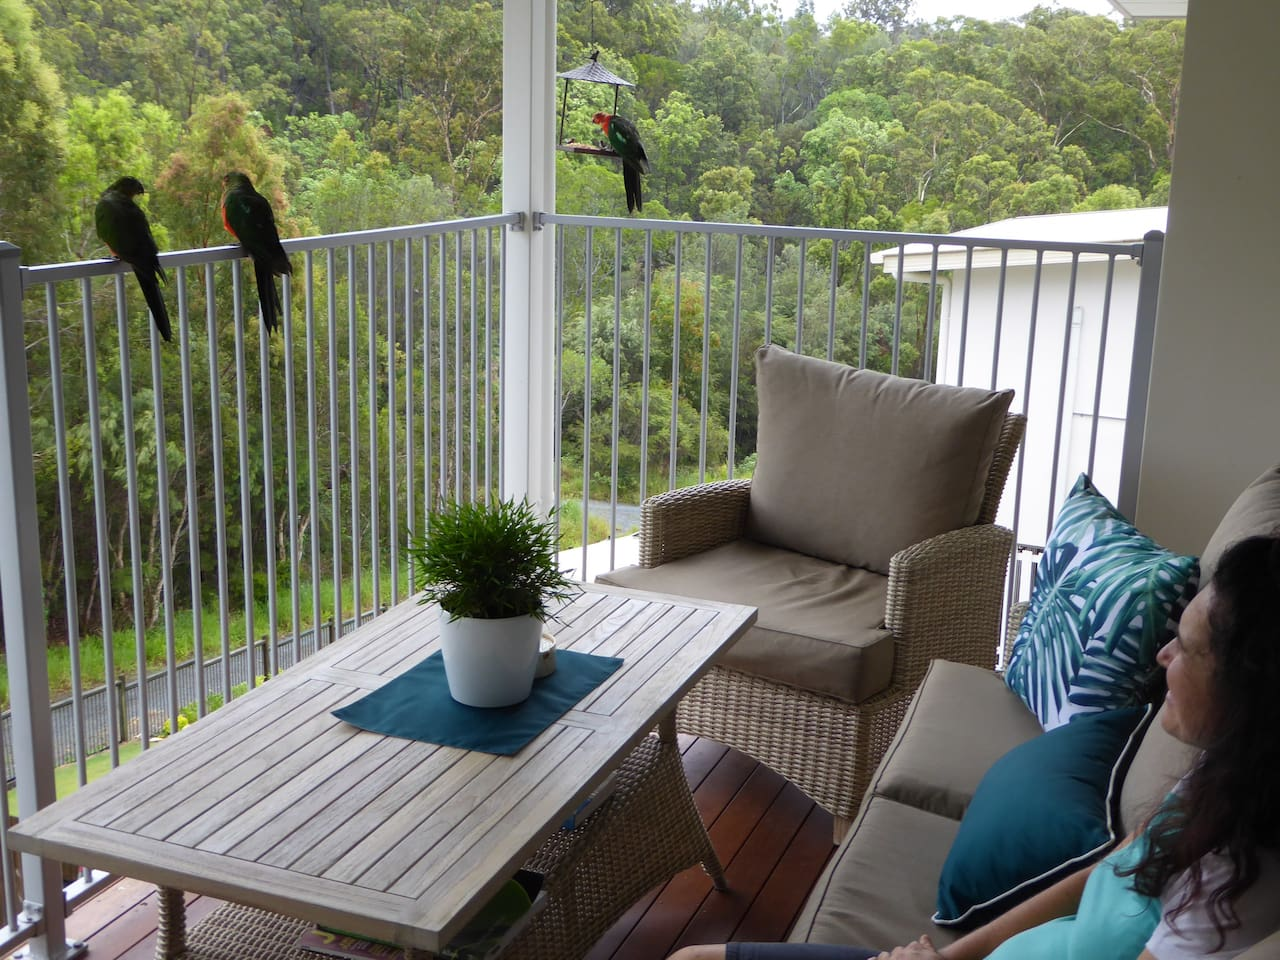 Be alert for close encounters of the many birds that pop in from the adjoining native forest.